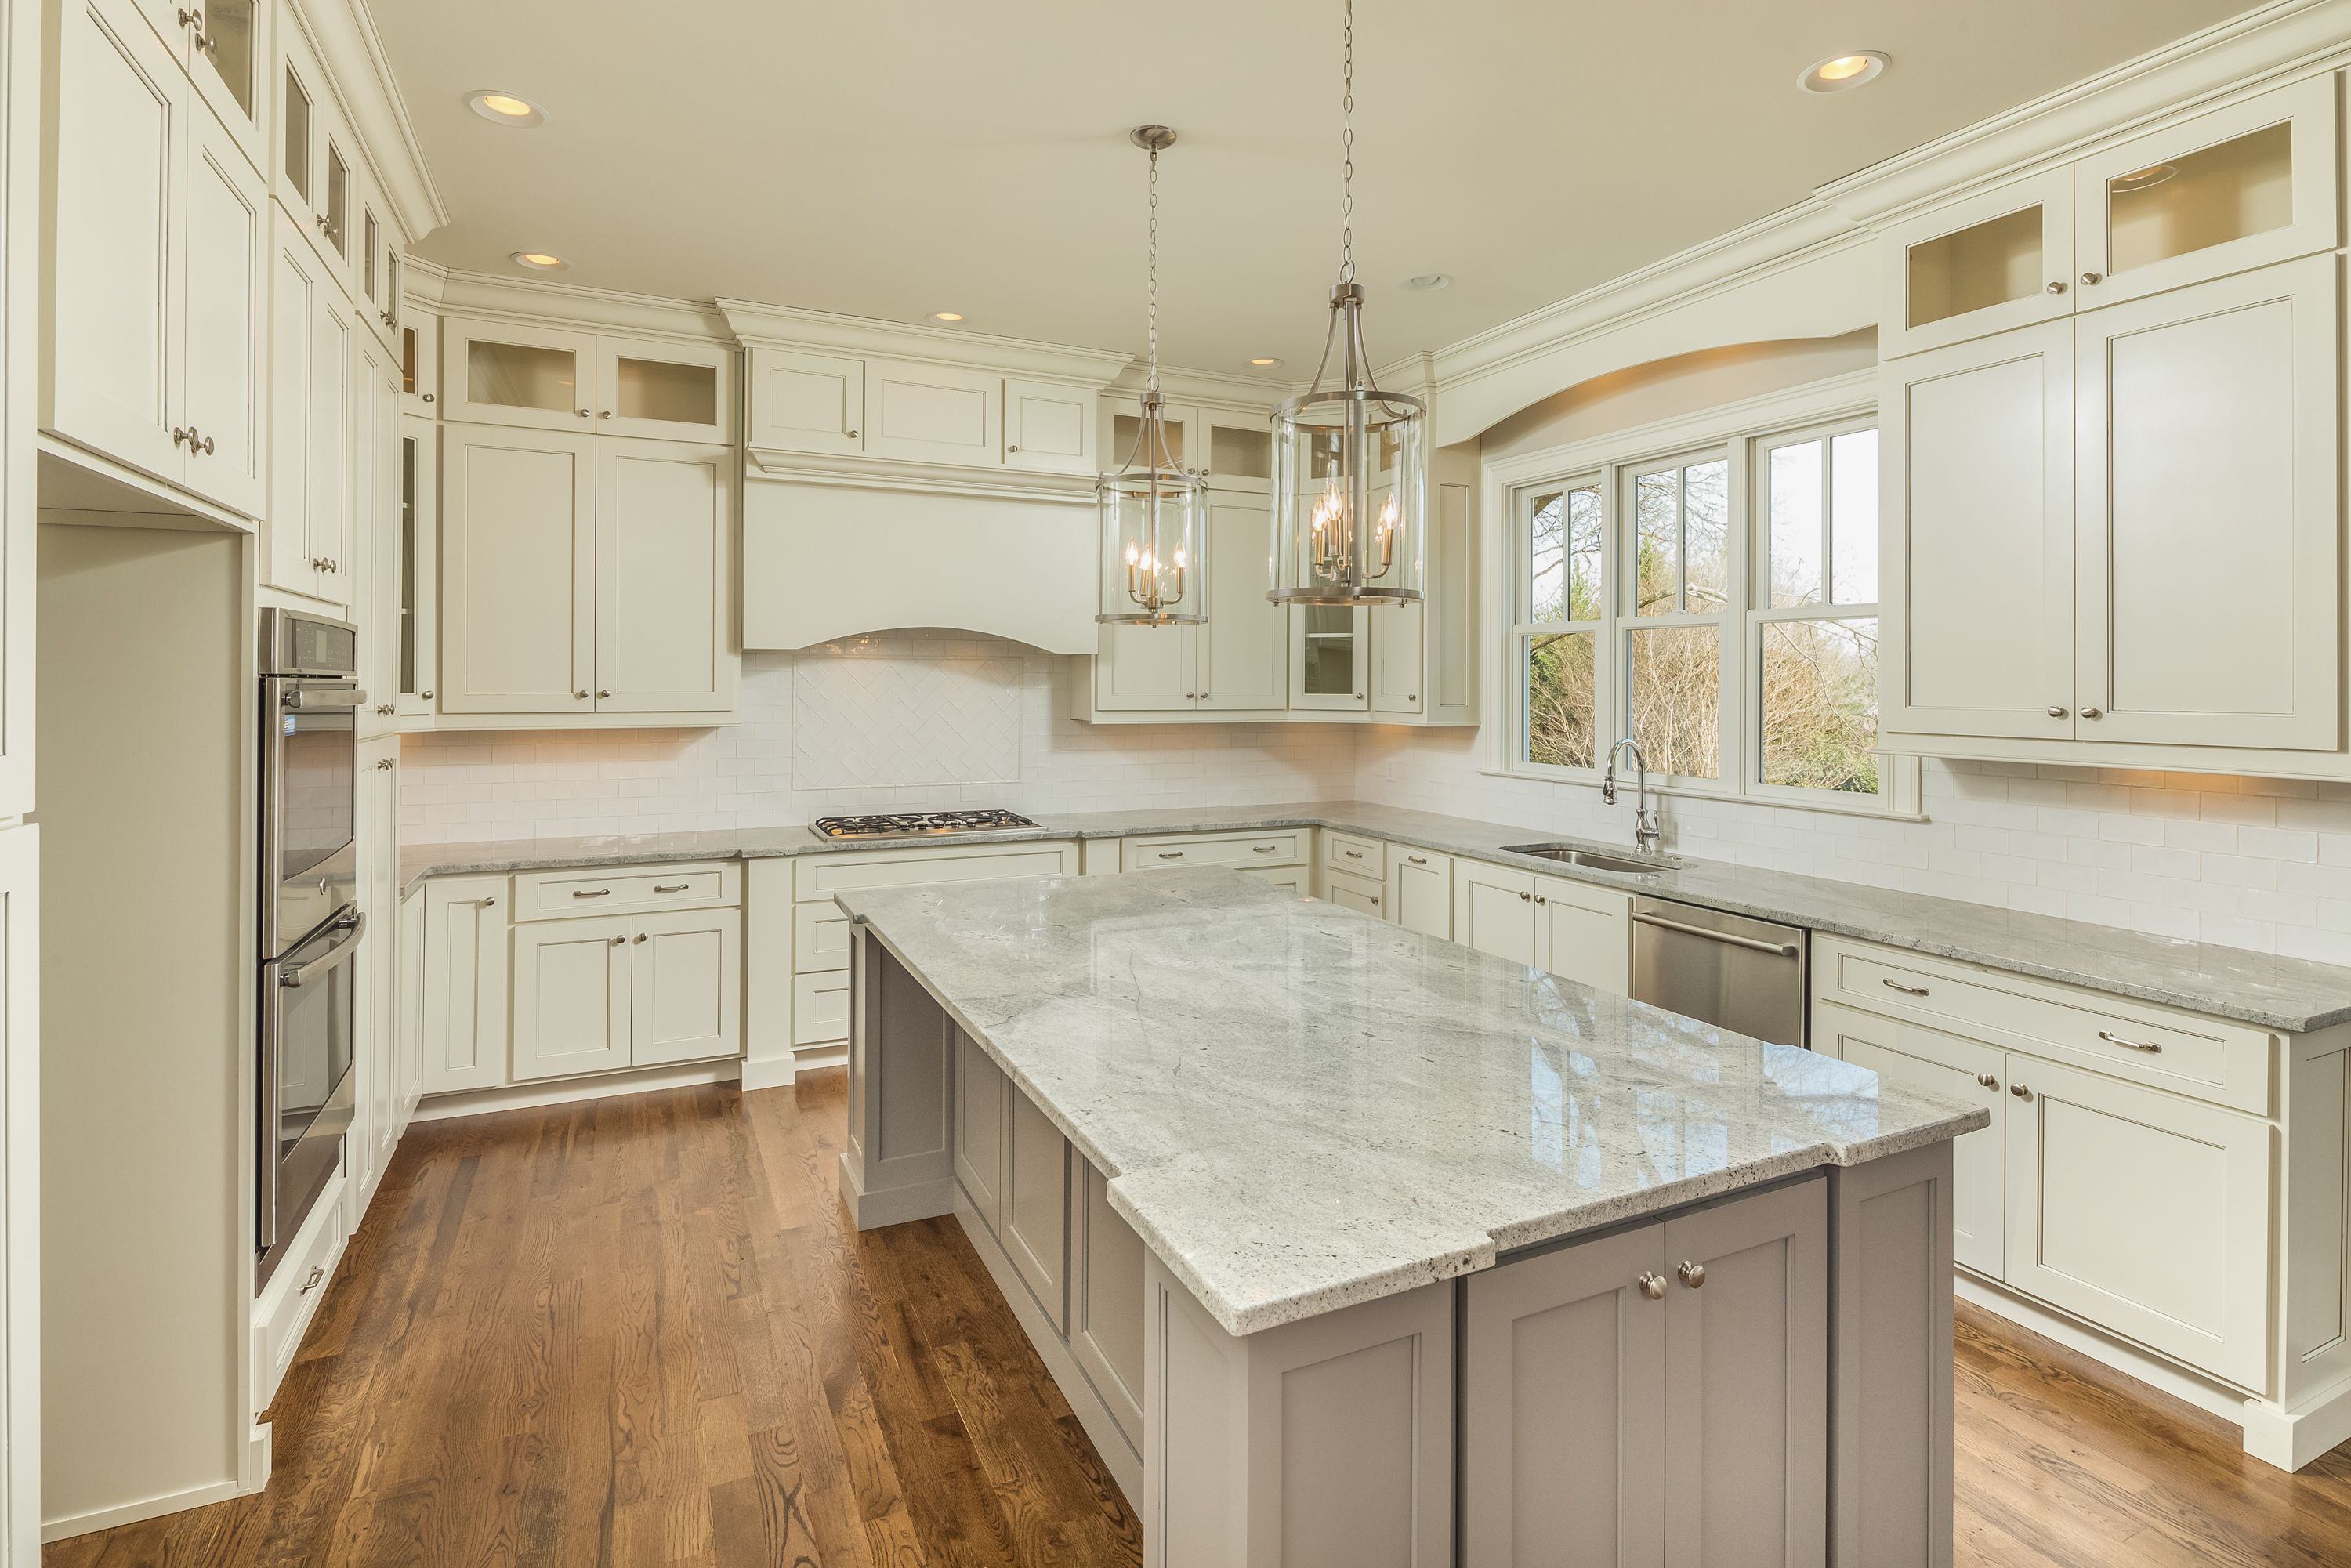 white cabinet s that extend to the ceiling and if craftsman style this kitchen wa kitchen on kitchen cabinets to the ceiling id=29266